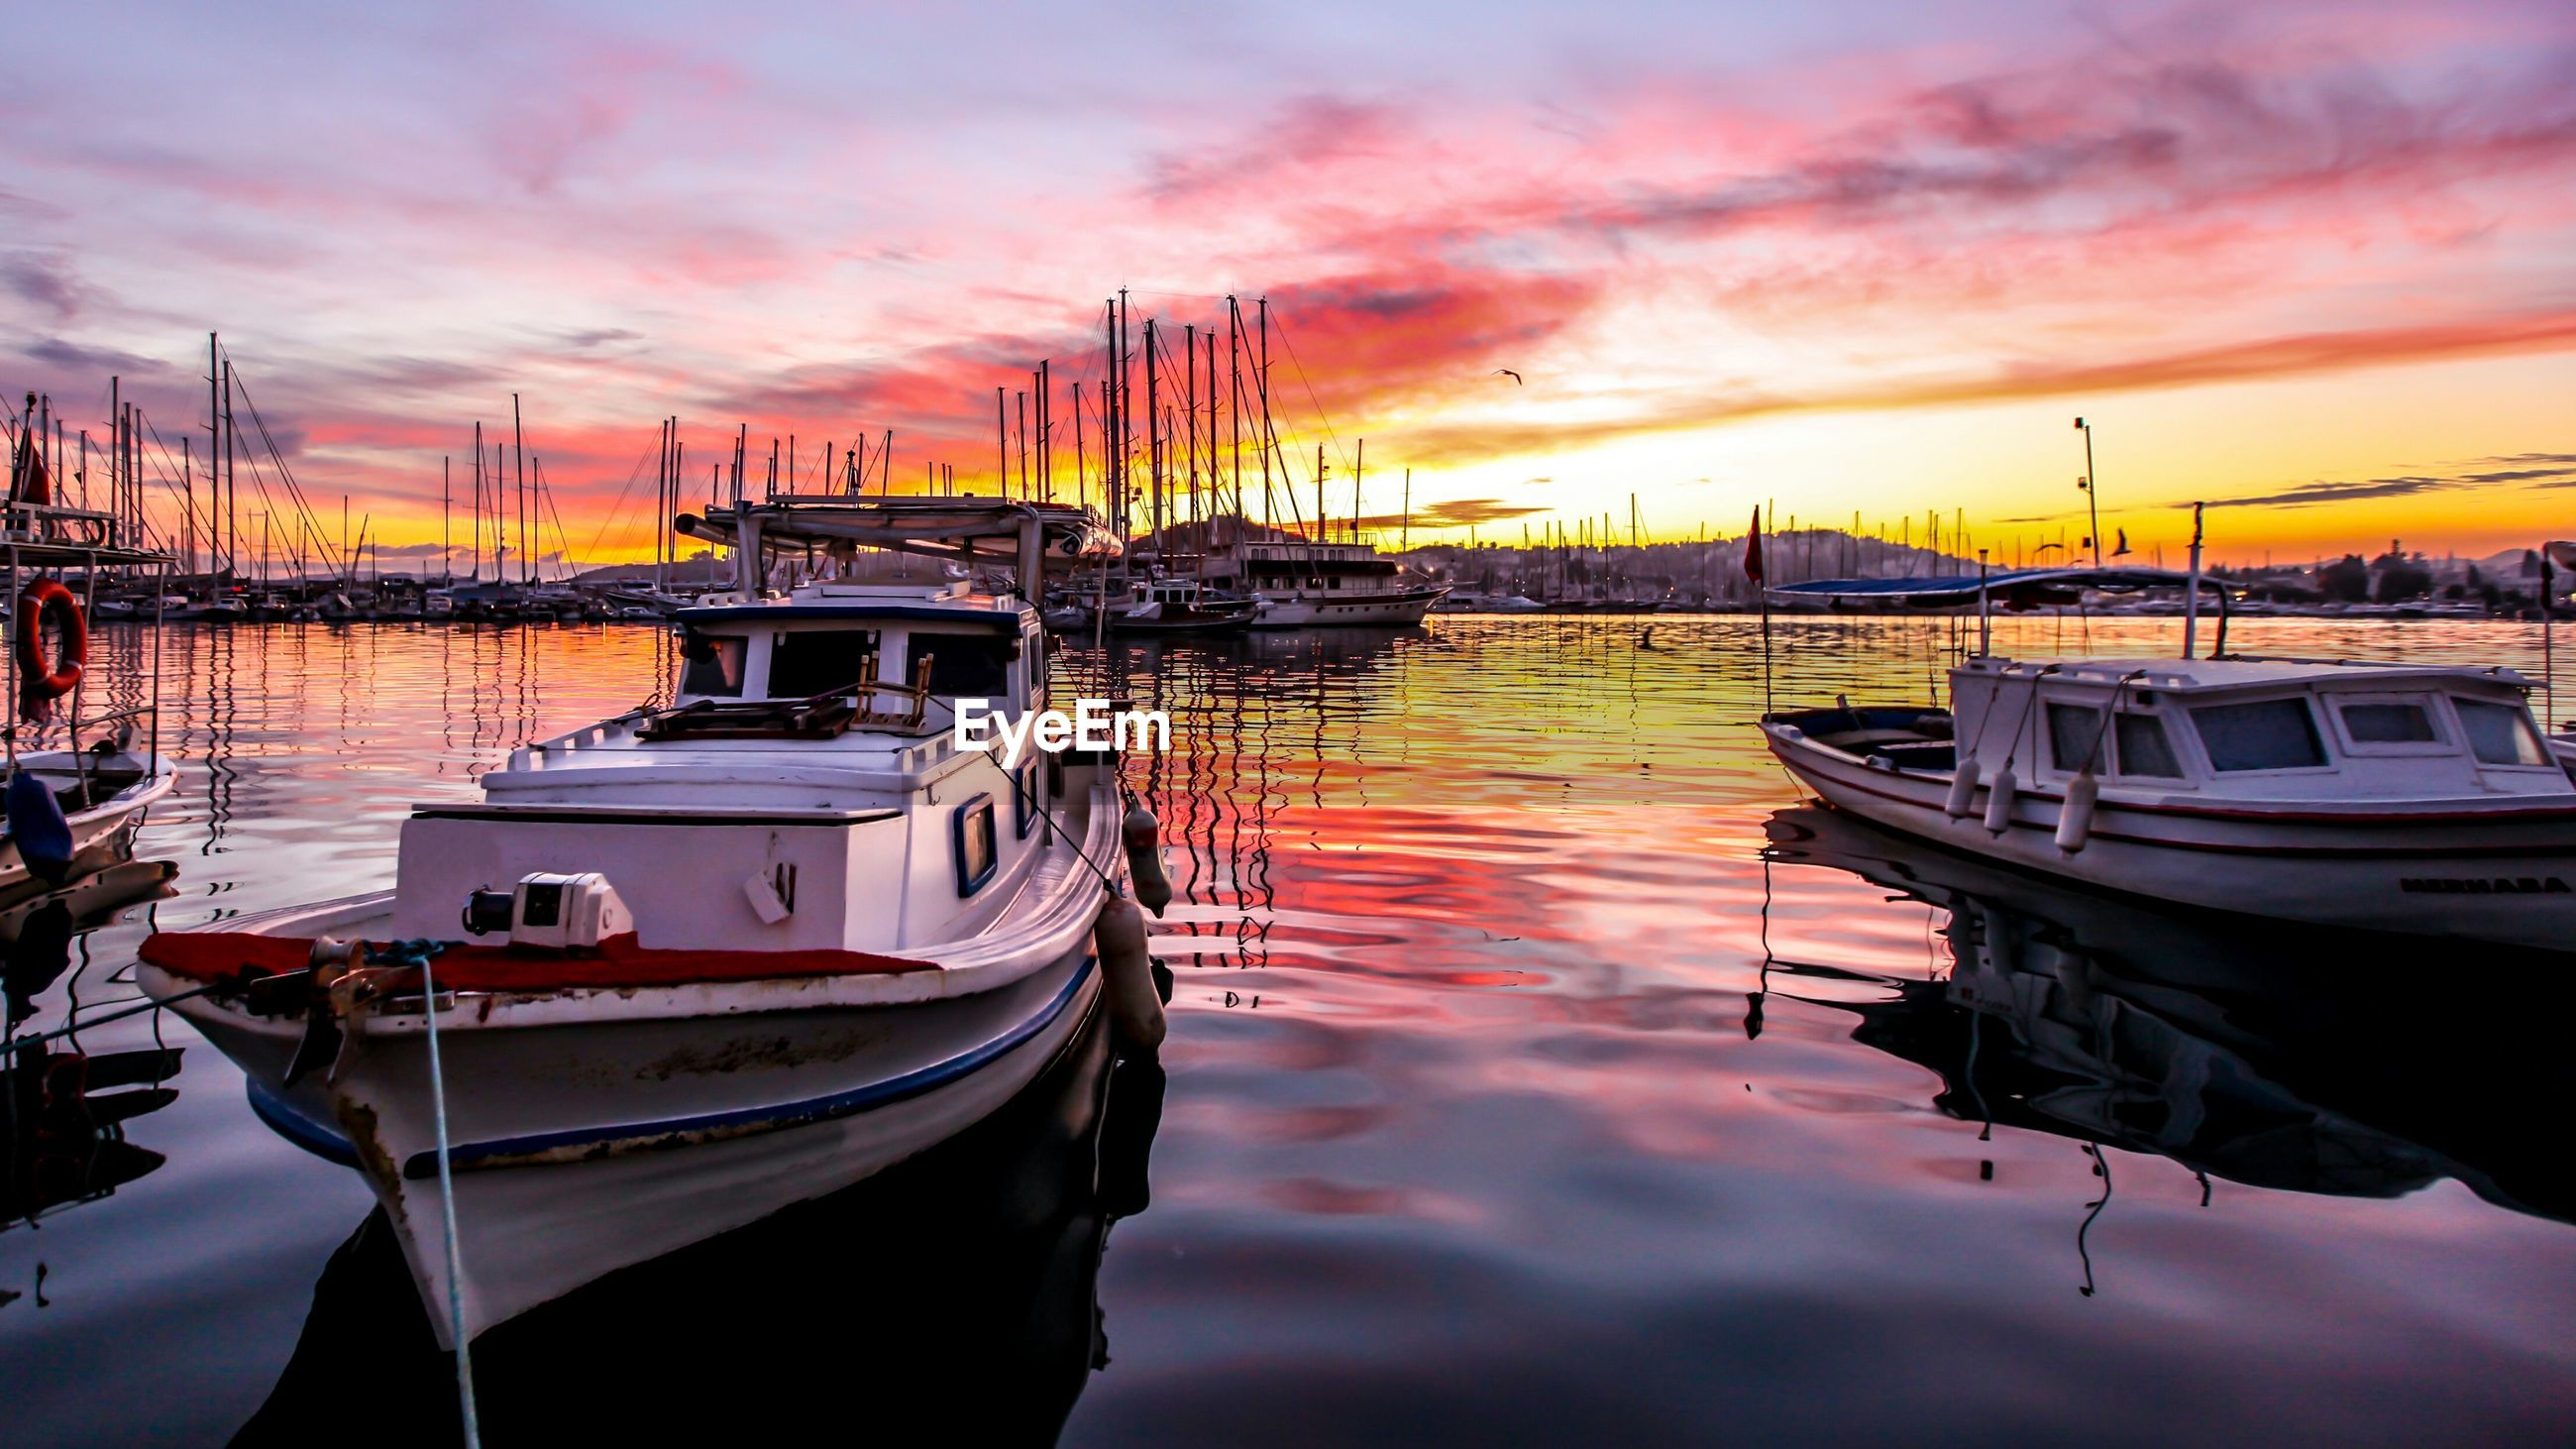 Boats moored at river against cloudy sky during sunset